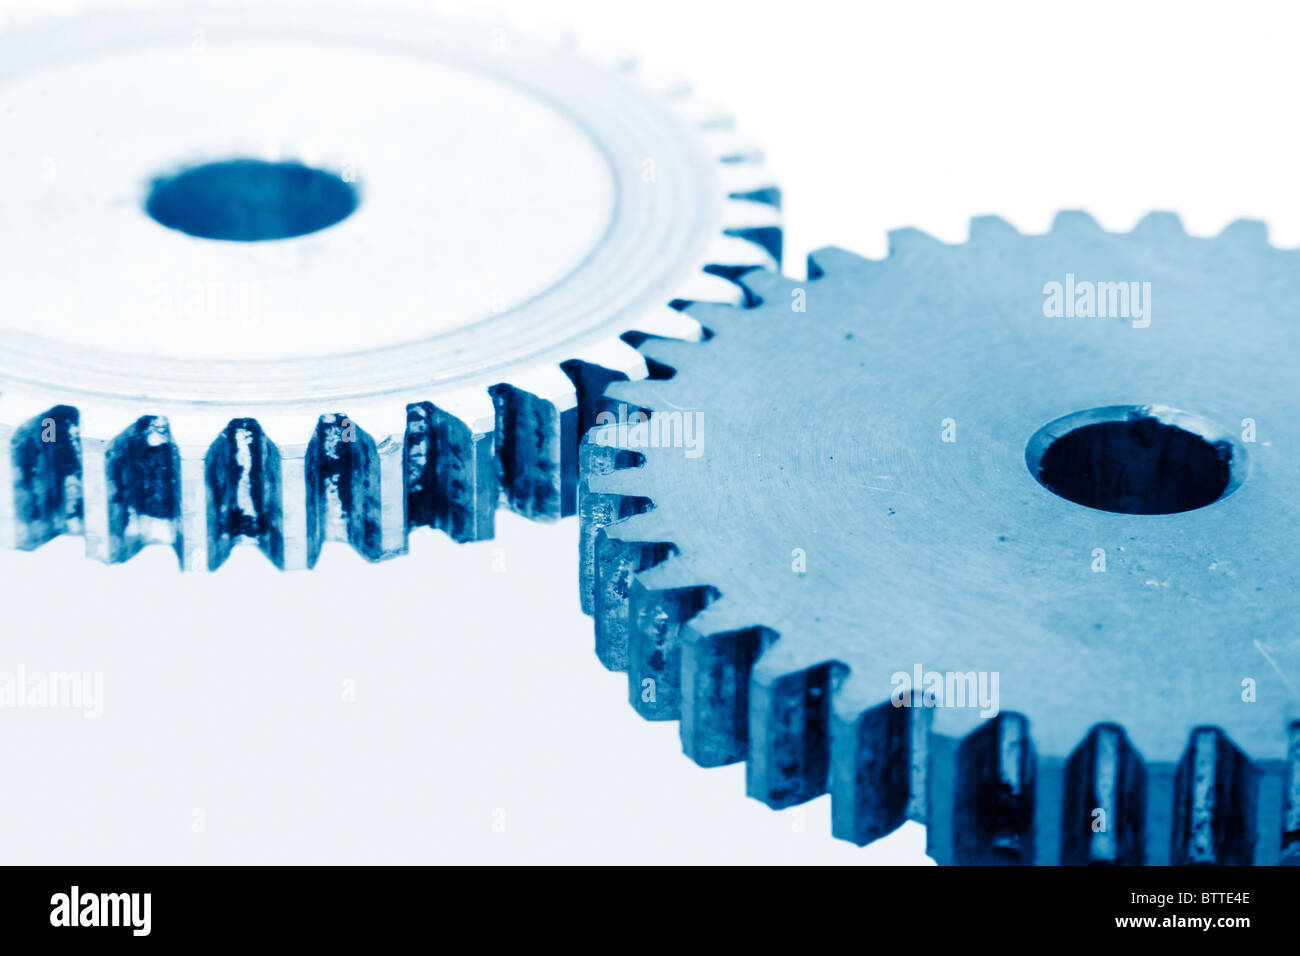 gears as industrial technology concept - Stock Image